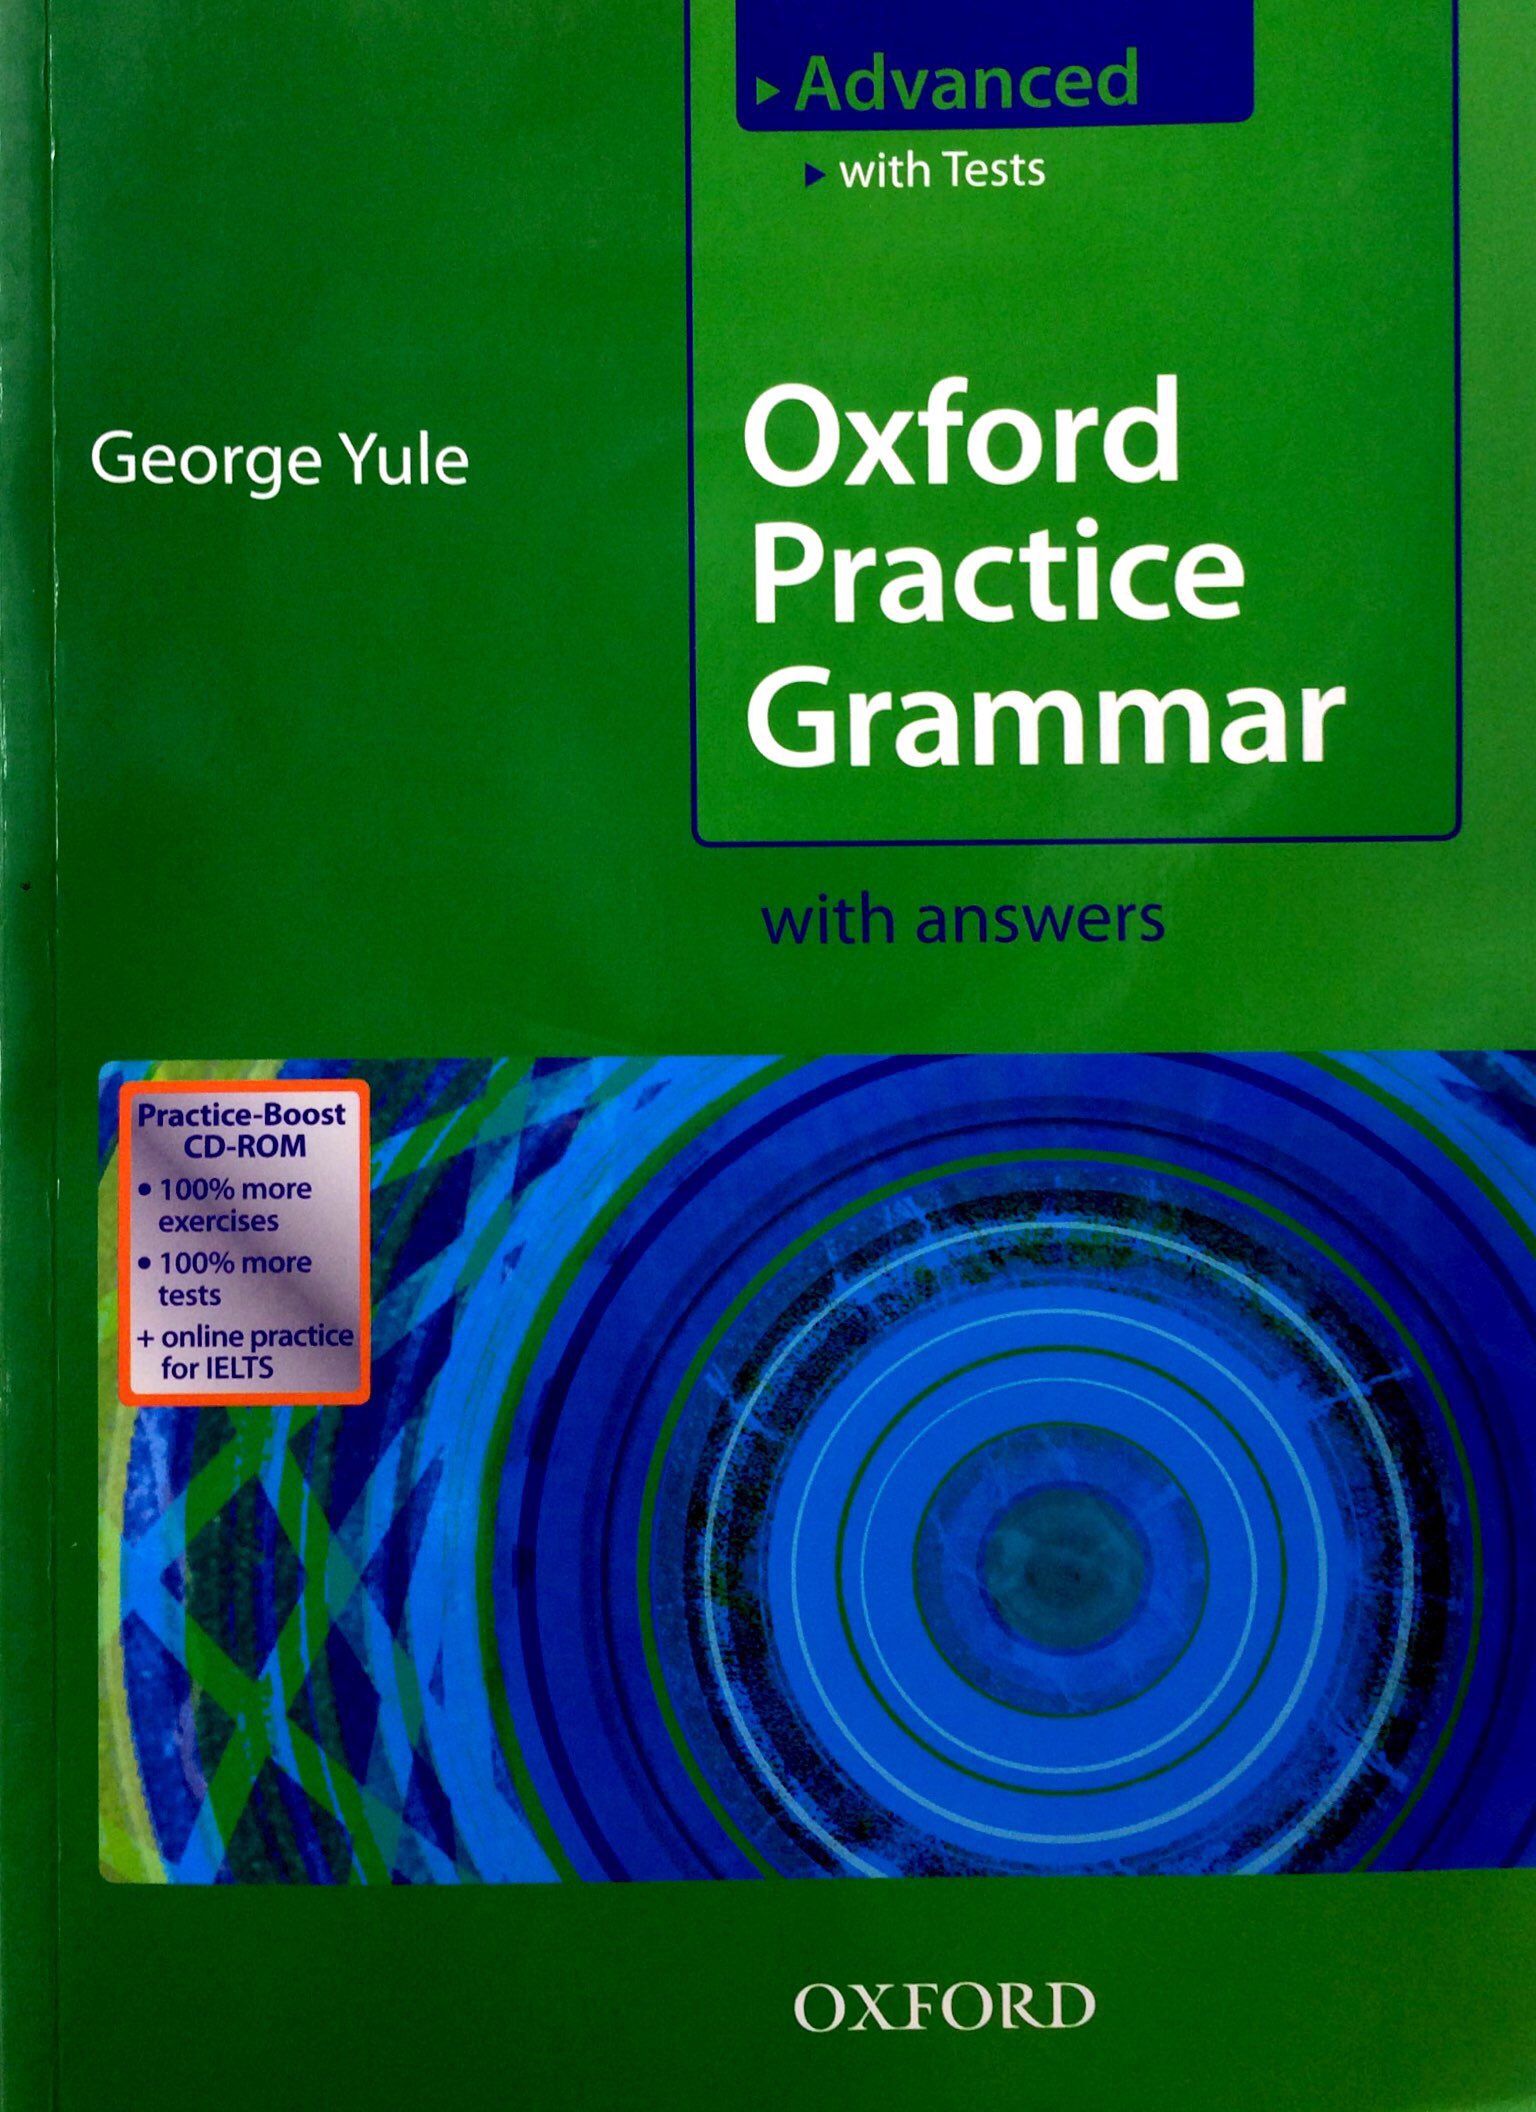 Fahasa - Oxford Practice Grammar Advanced Practice-Boost CD-ROM Pack With Key